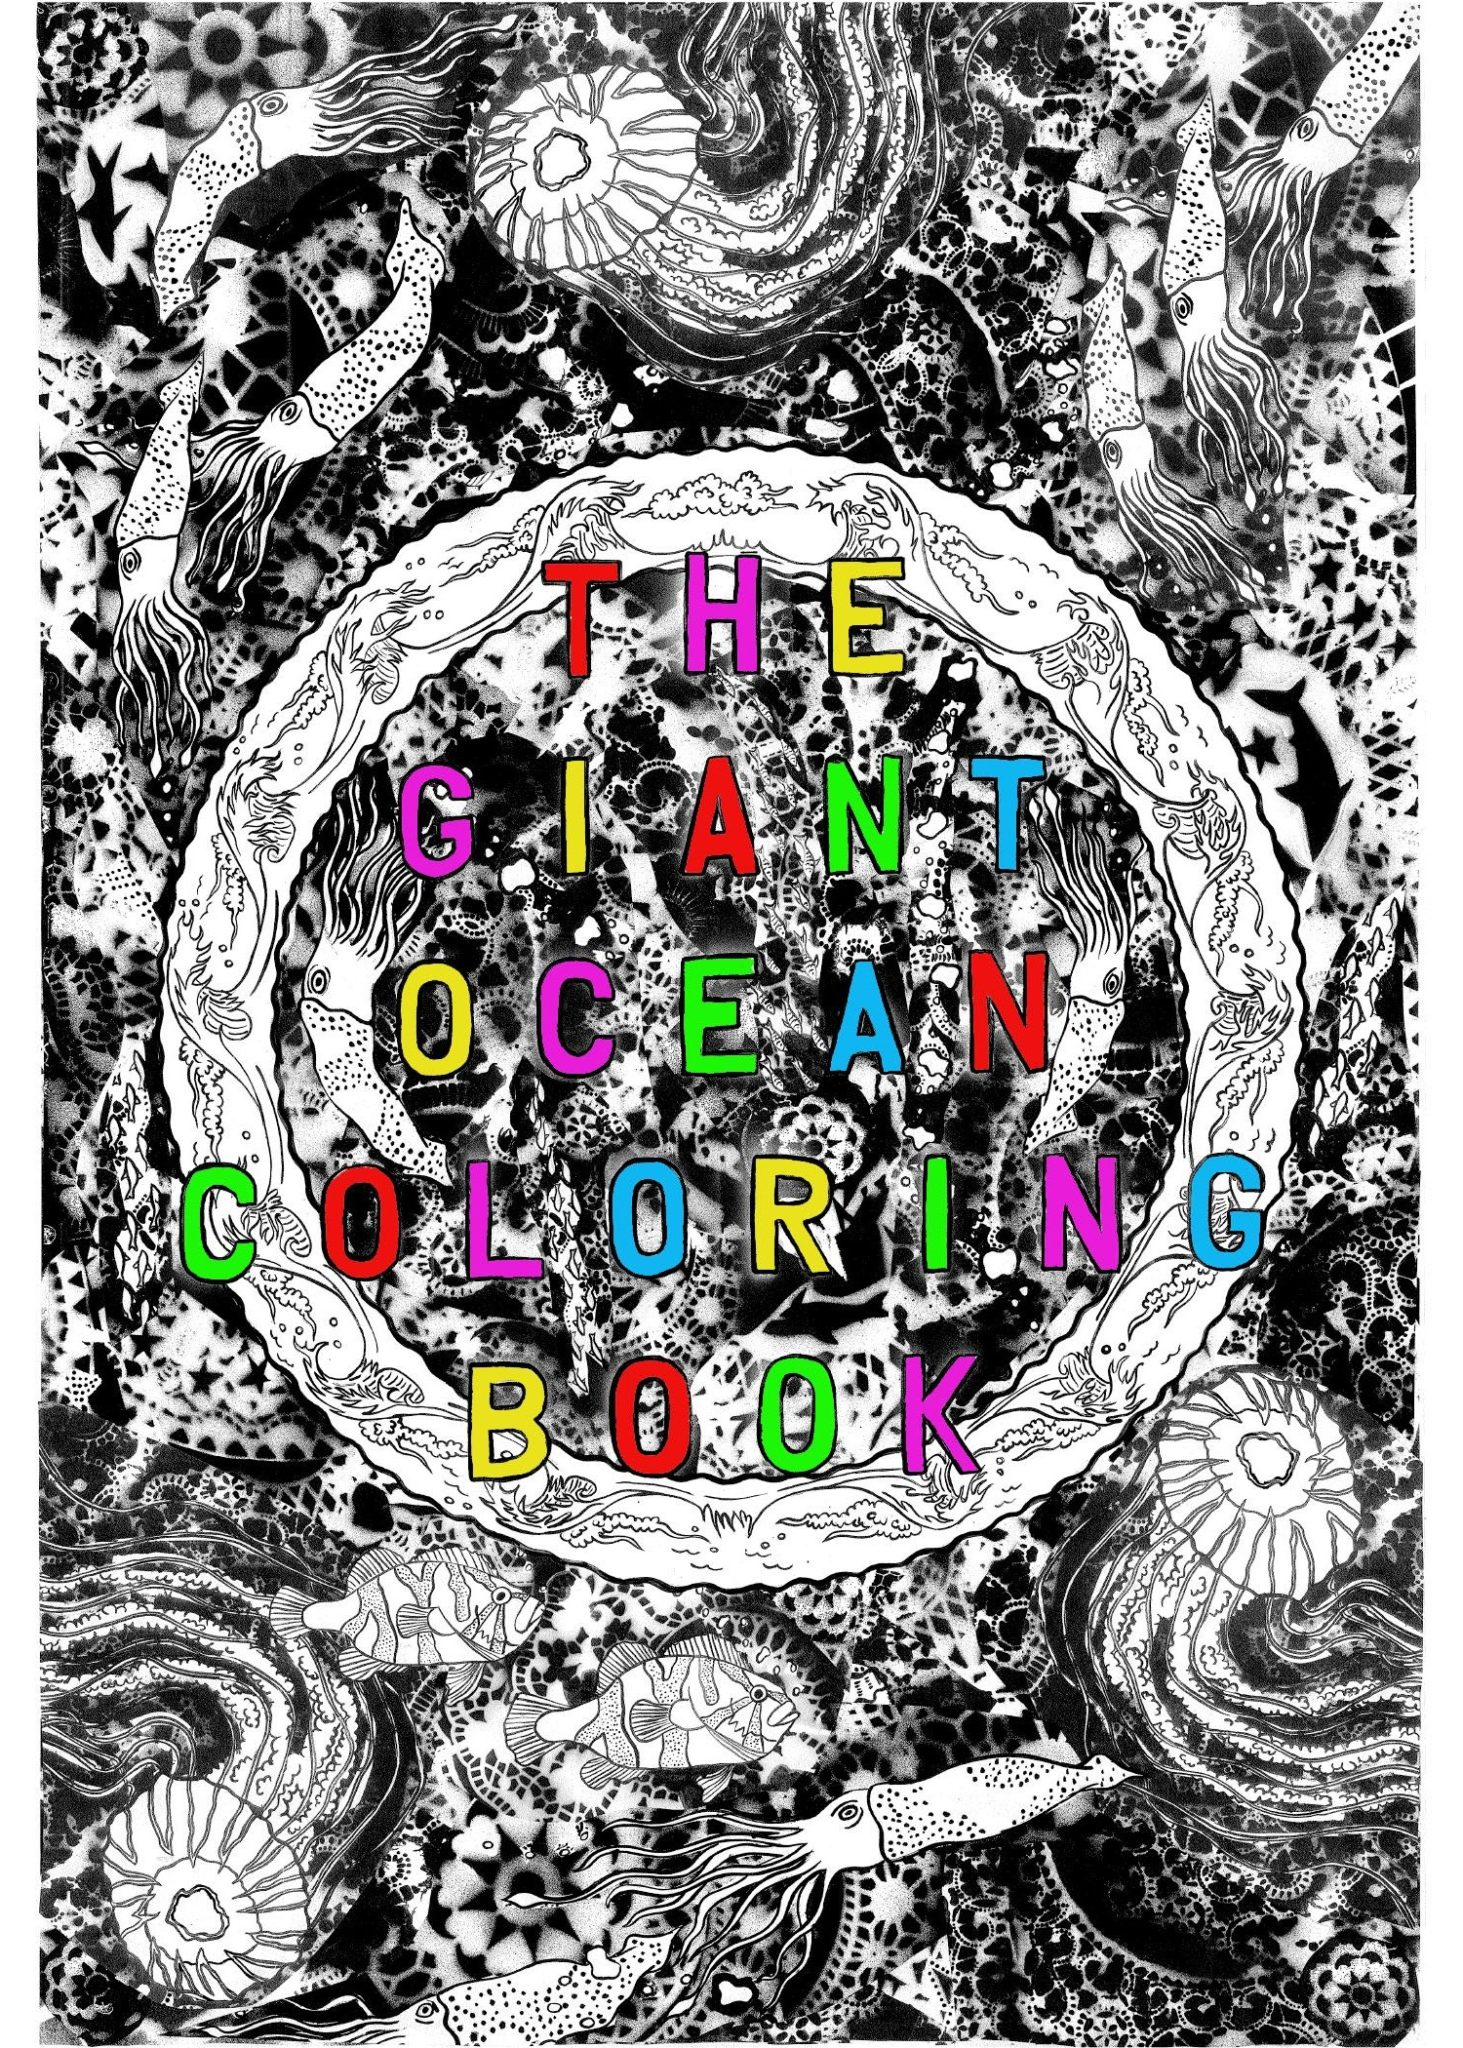 The Giant Ocean Coloring Book, on display at the Seymour Marine Discovery Center.